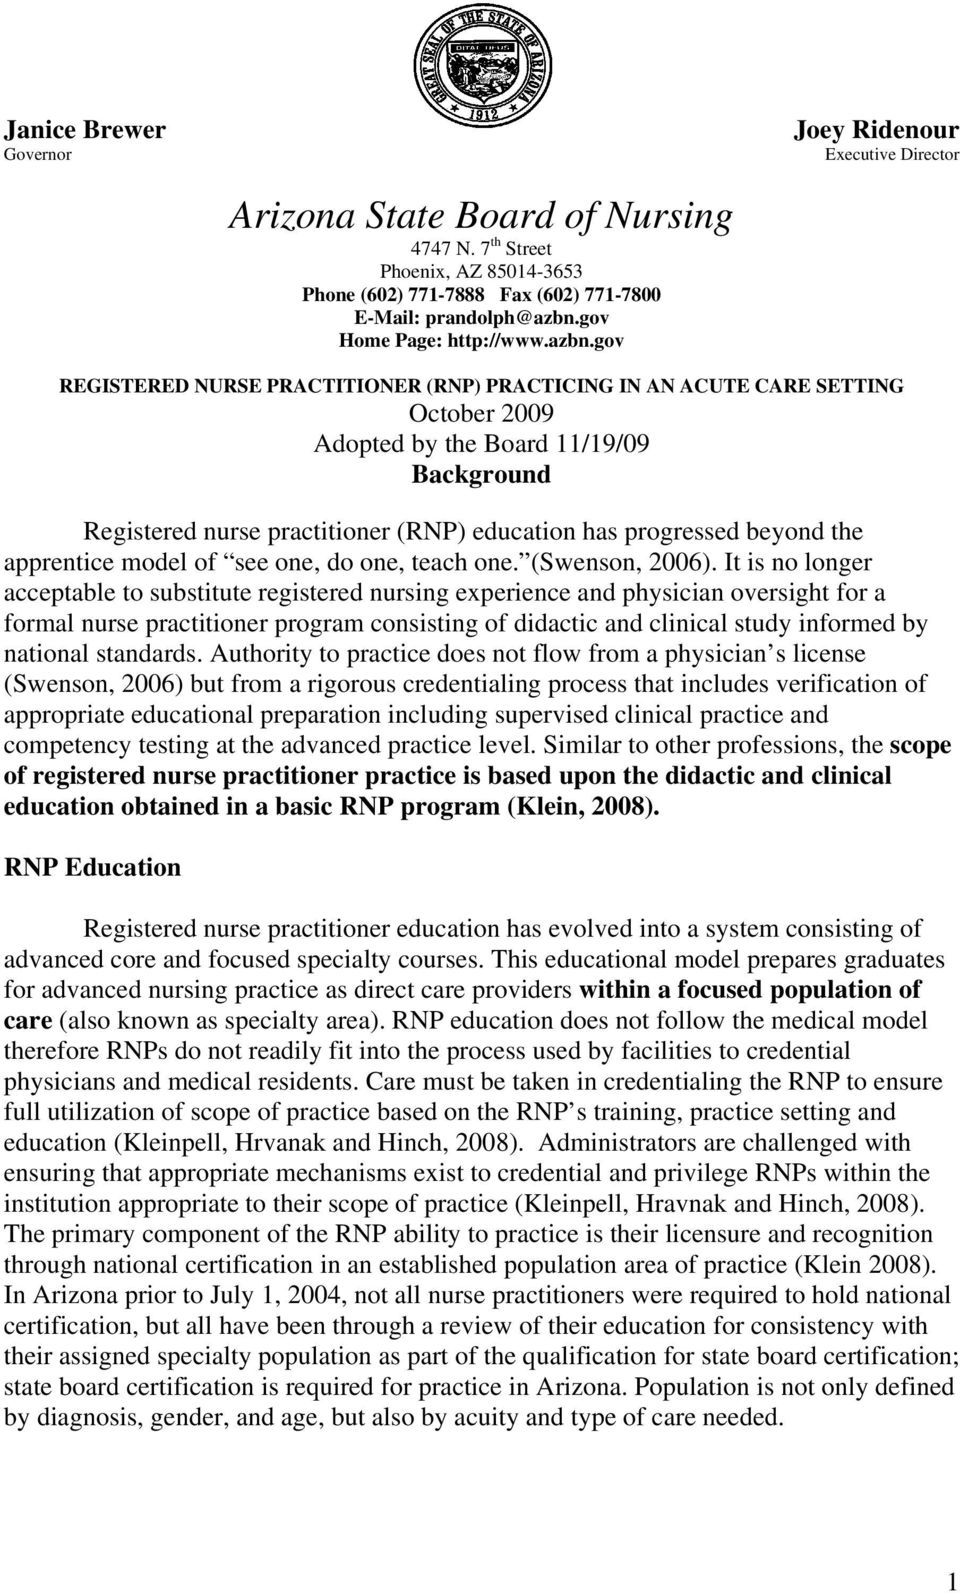 gov REGISTERED NURSE PRACTITIONER (RNP) PRACTICING IN AN ACUTE CARE SETTING October 2009 Adopted by the Board 11/19/09 Background Registered nurse practitioner (RNP) education has progressed beyond